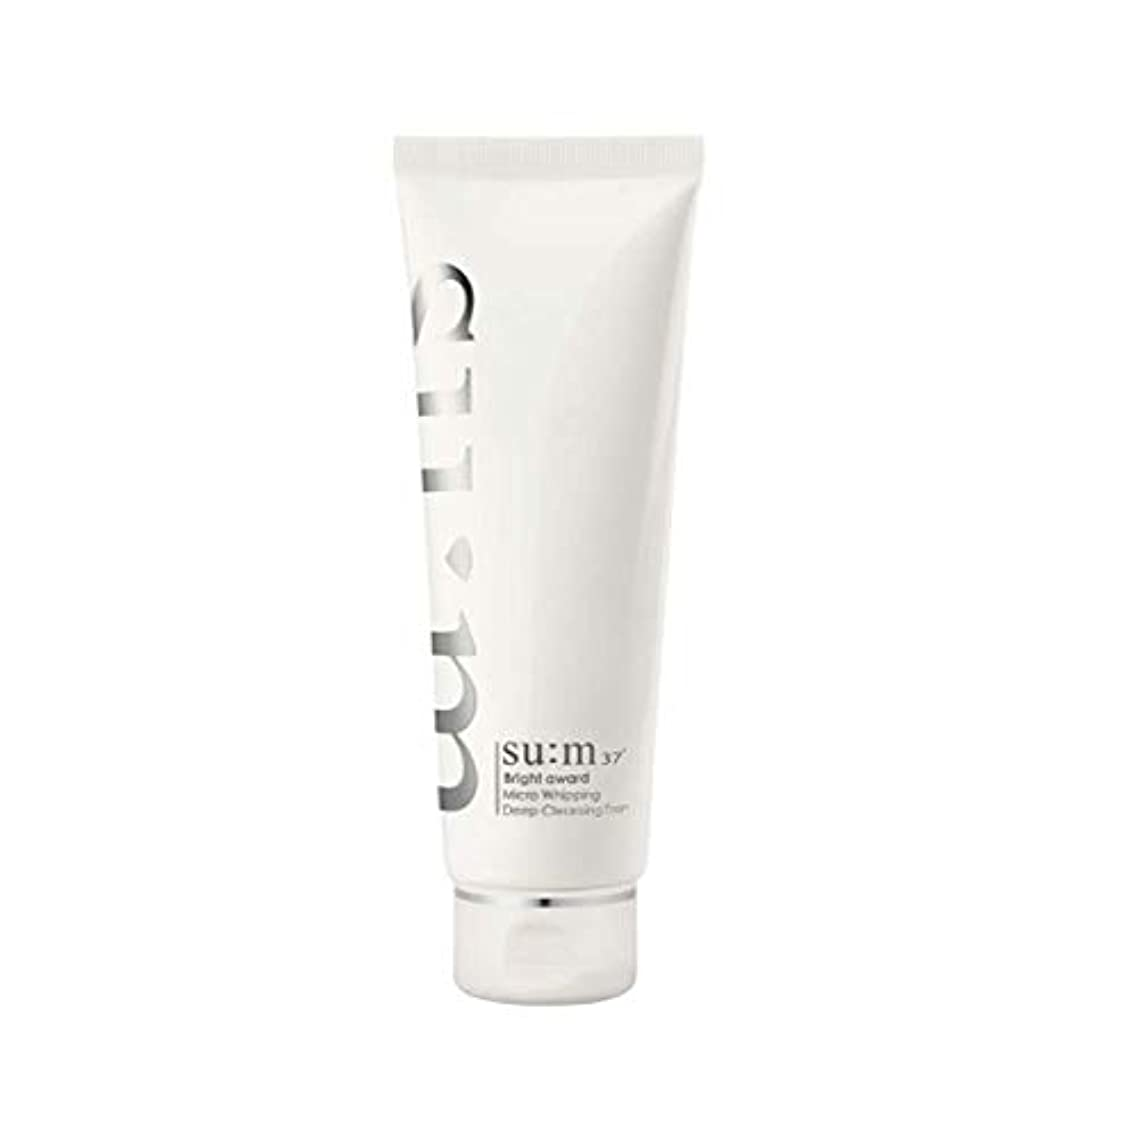 横鋭く縁石[su:m37/スム37°] SUM37 Bright Award Micro Whipping Deep Cleansing Foam(並行輸入品)